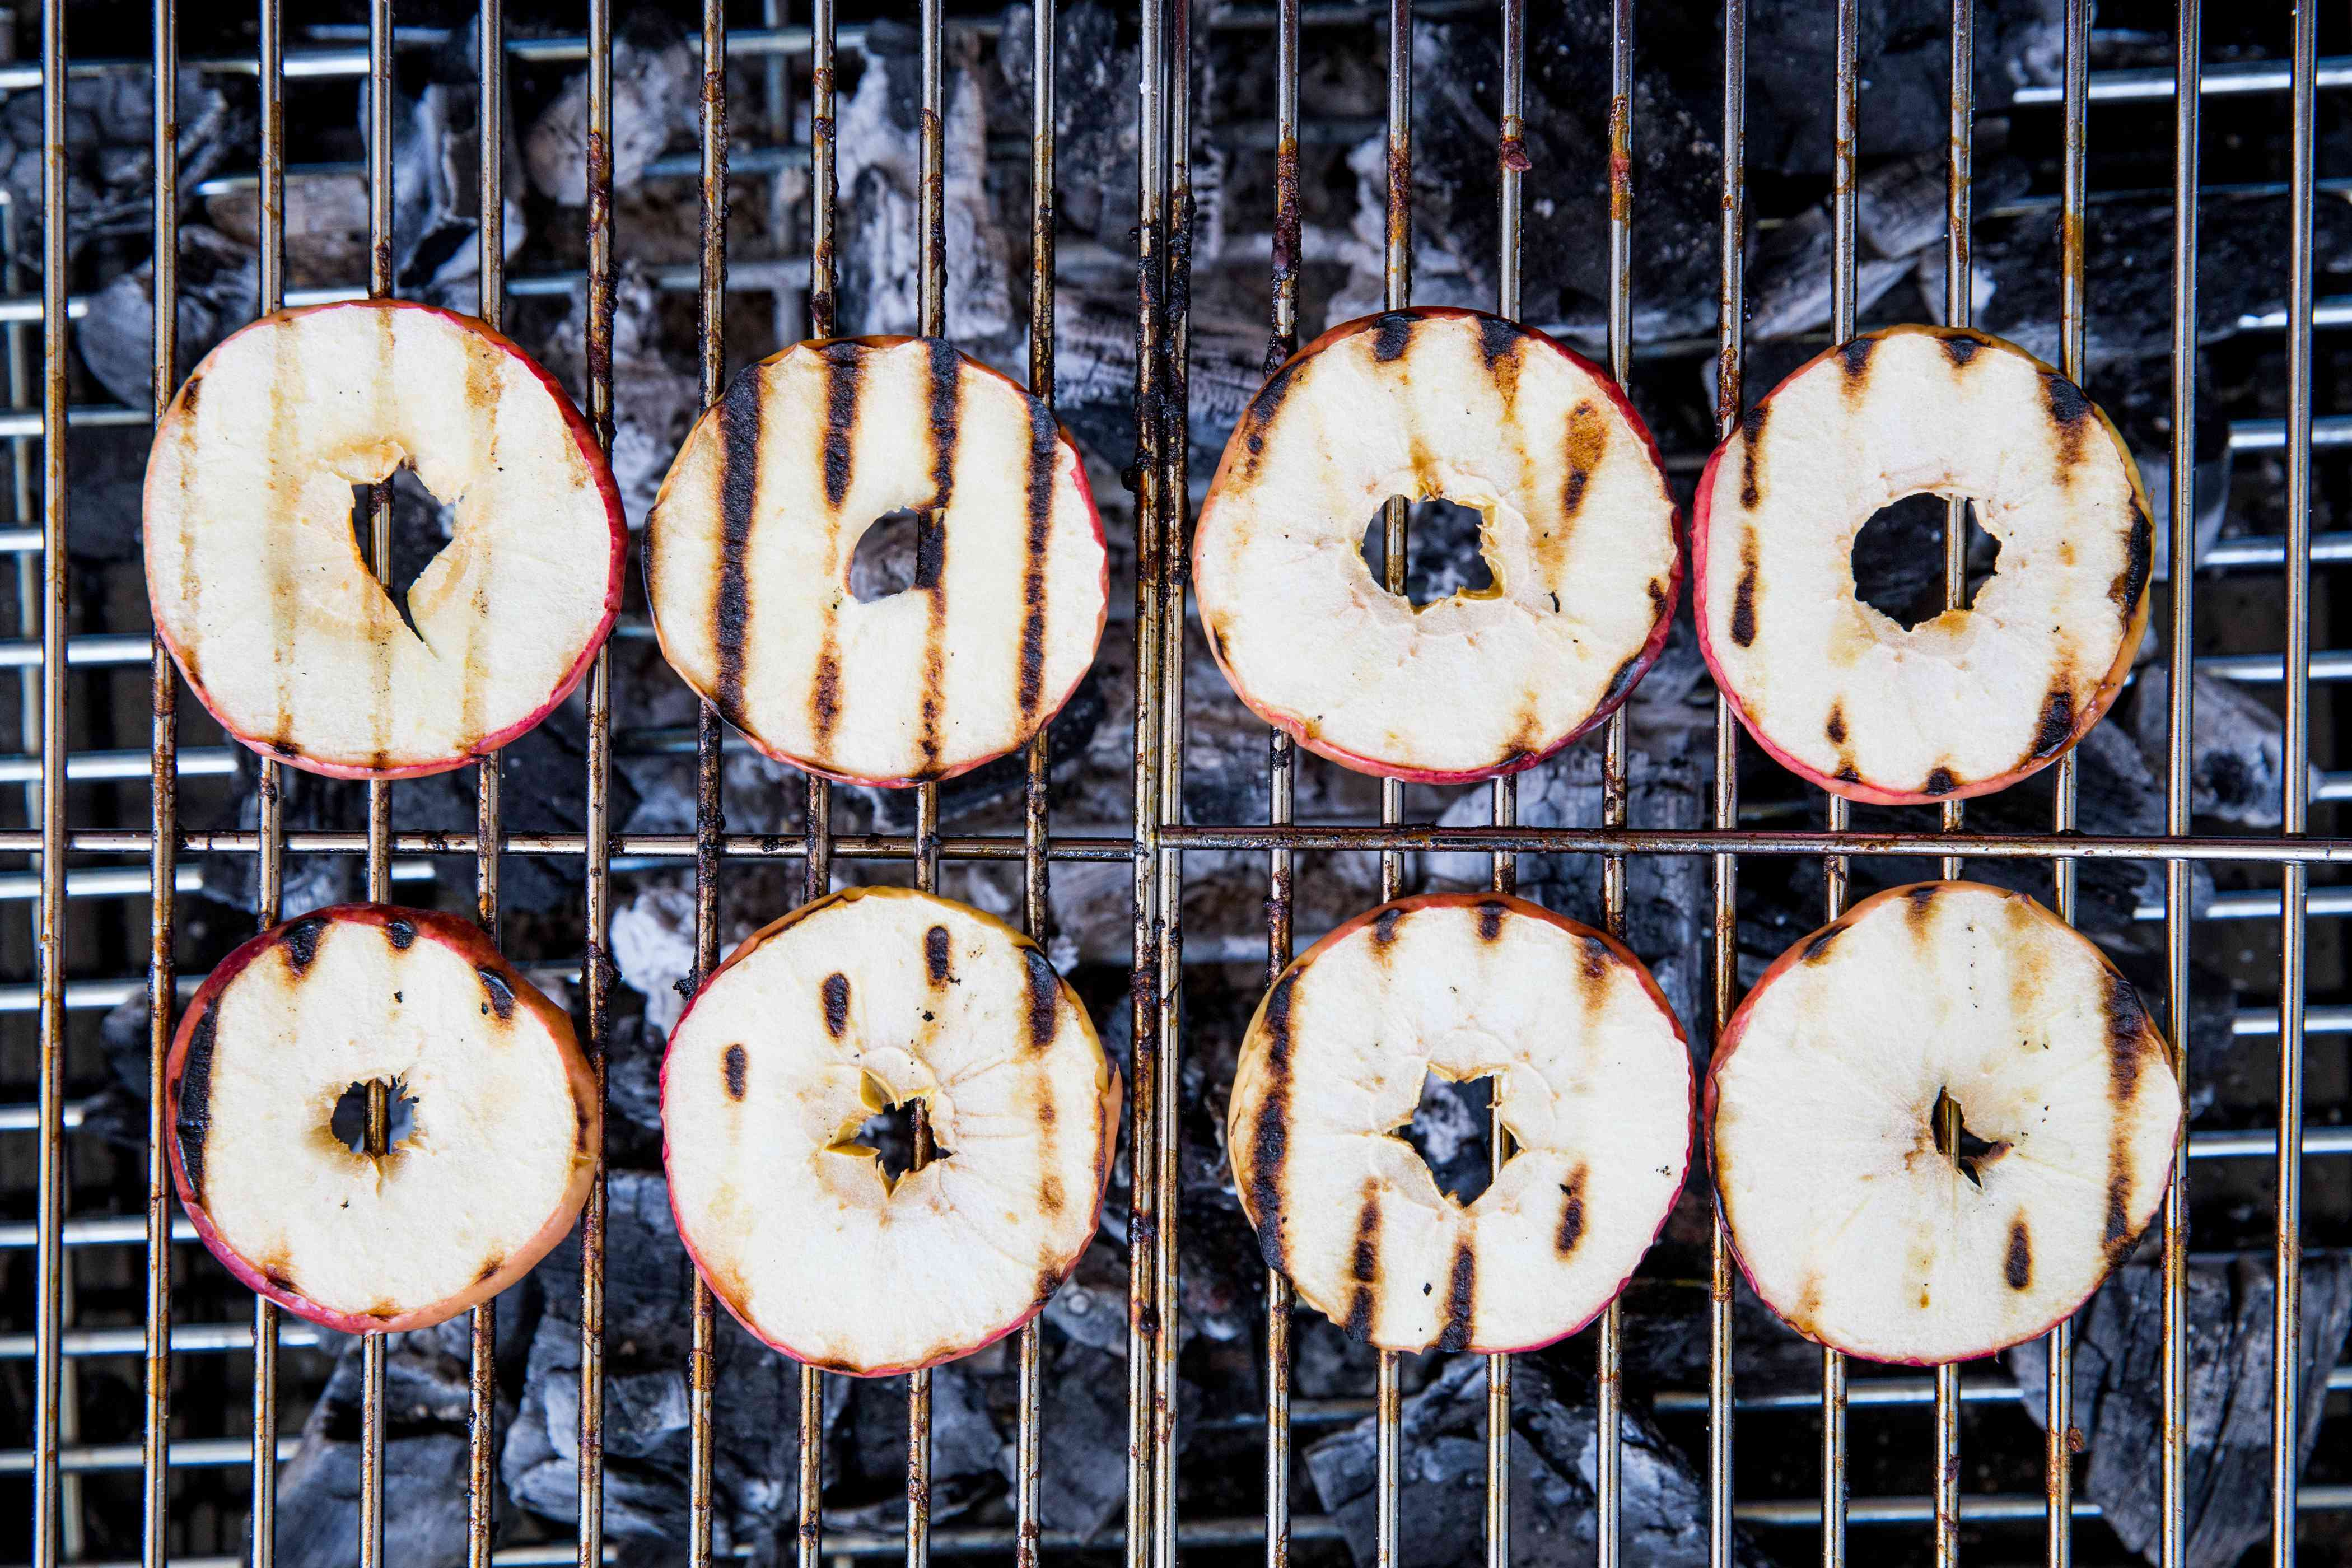 Apple slices on a grill rack